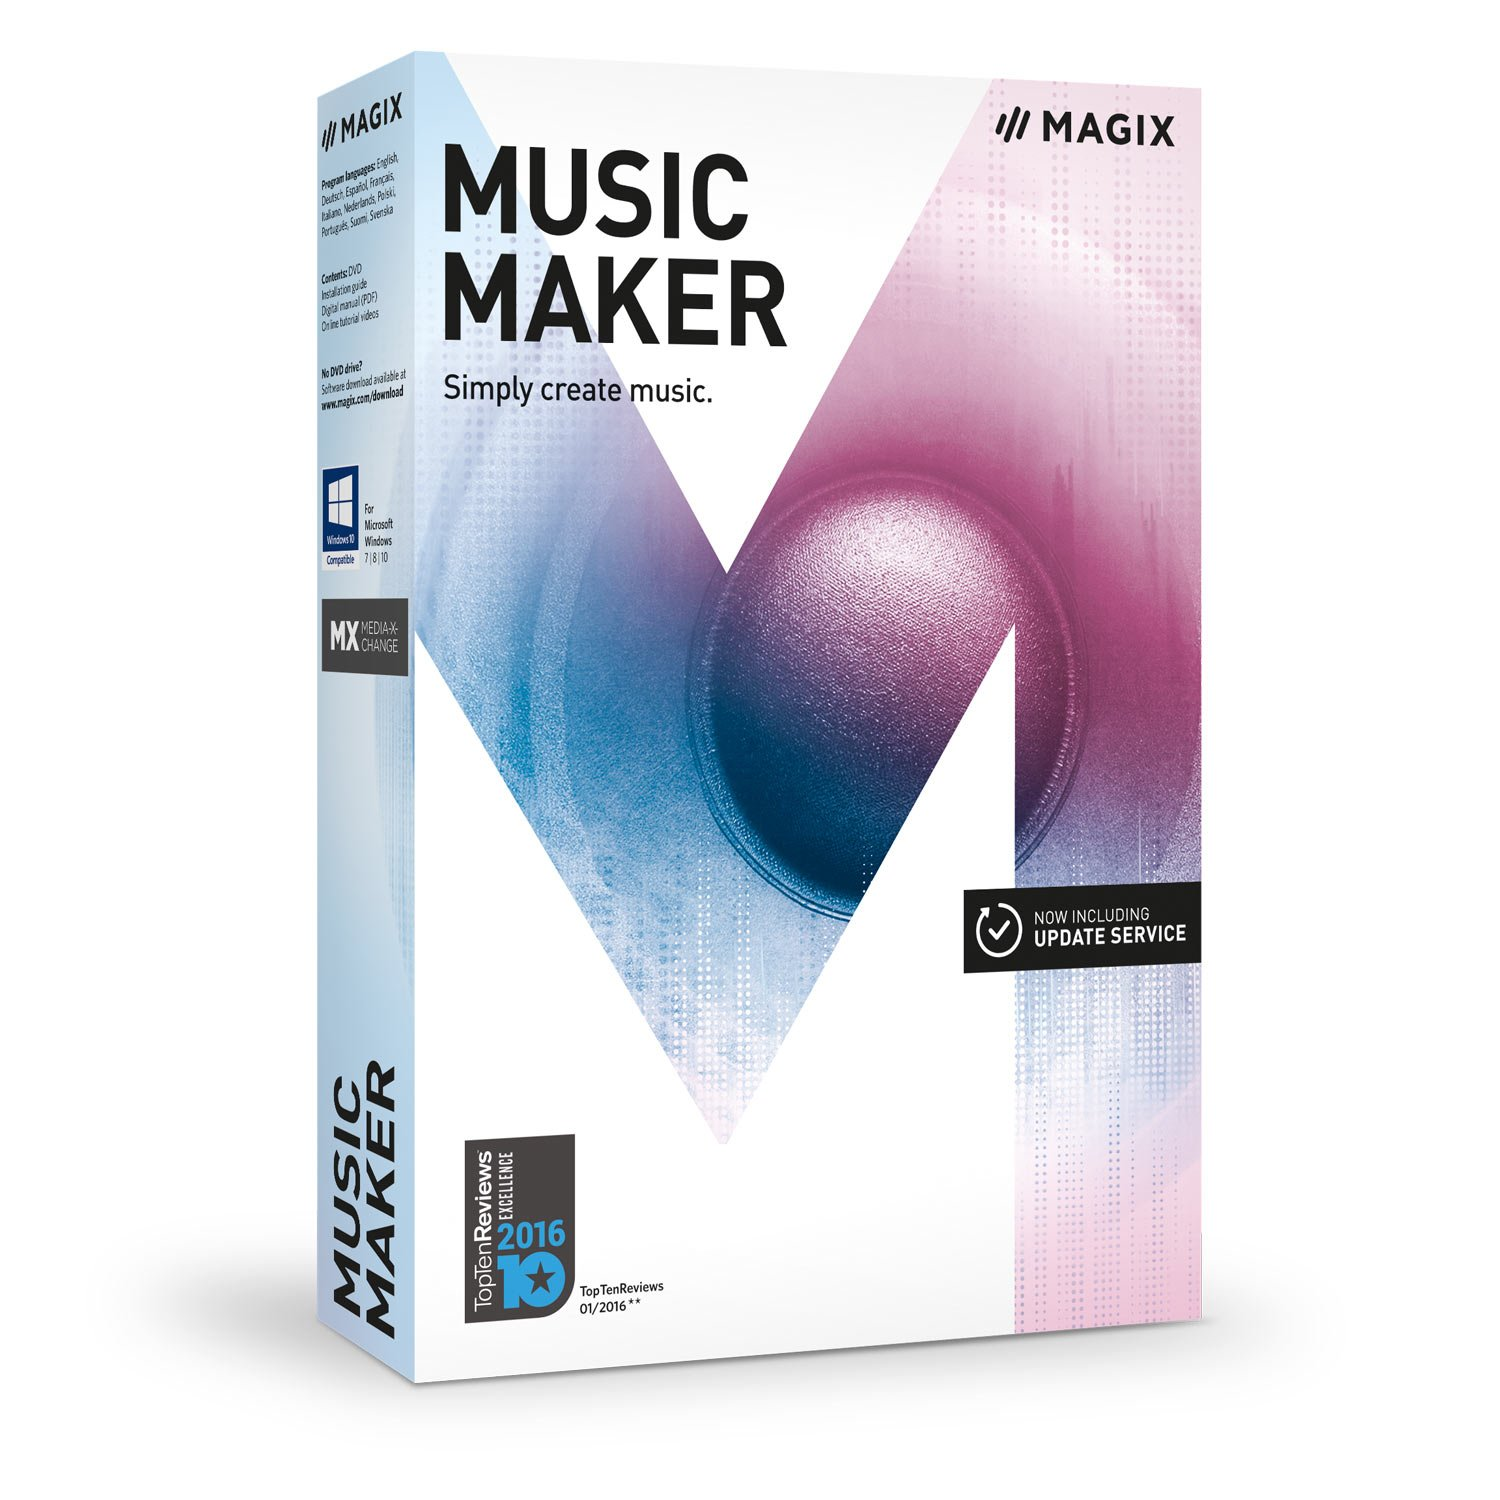 MAGIX Music Maker – 2017 Plus Edition – Make your own music the easy way by MAGIX